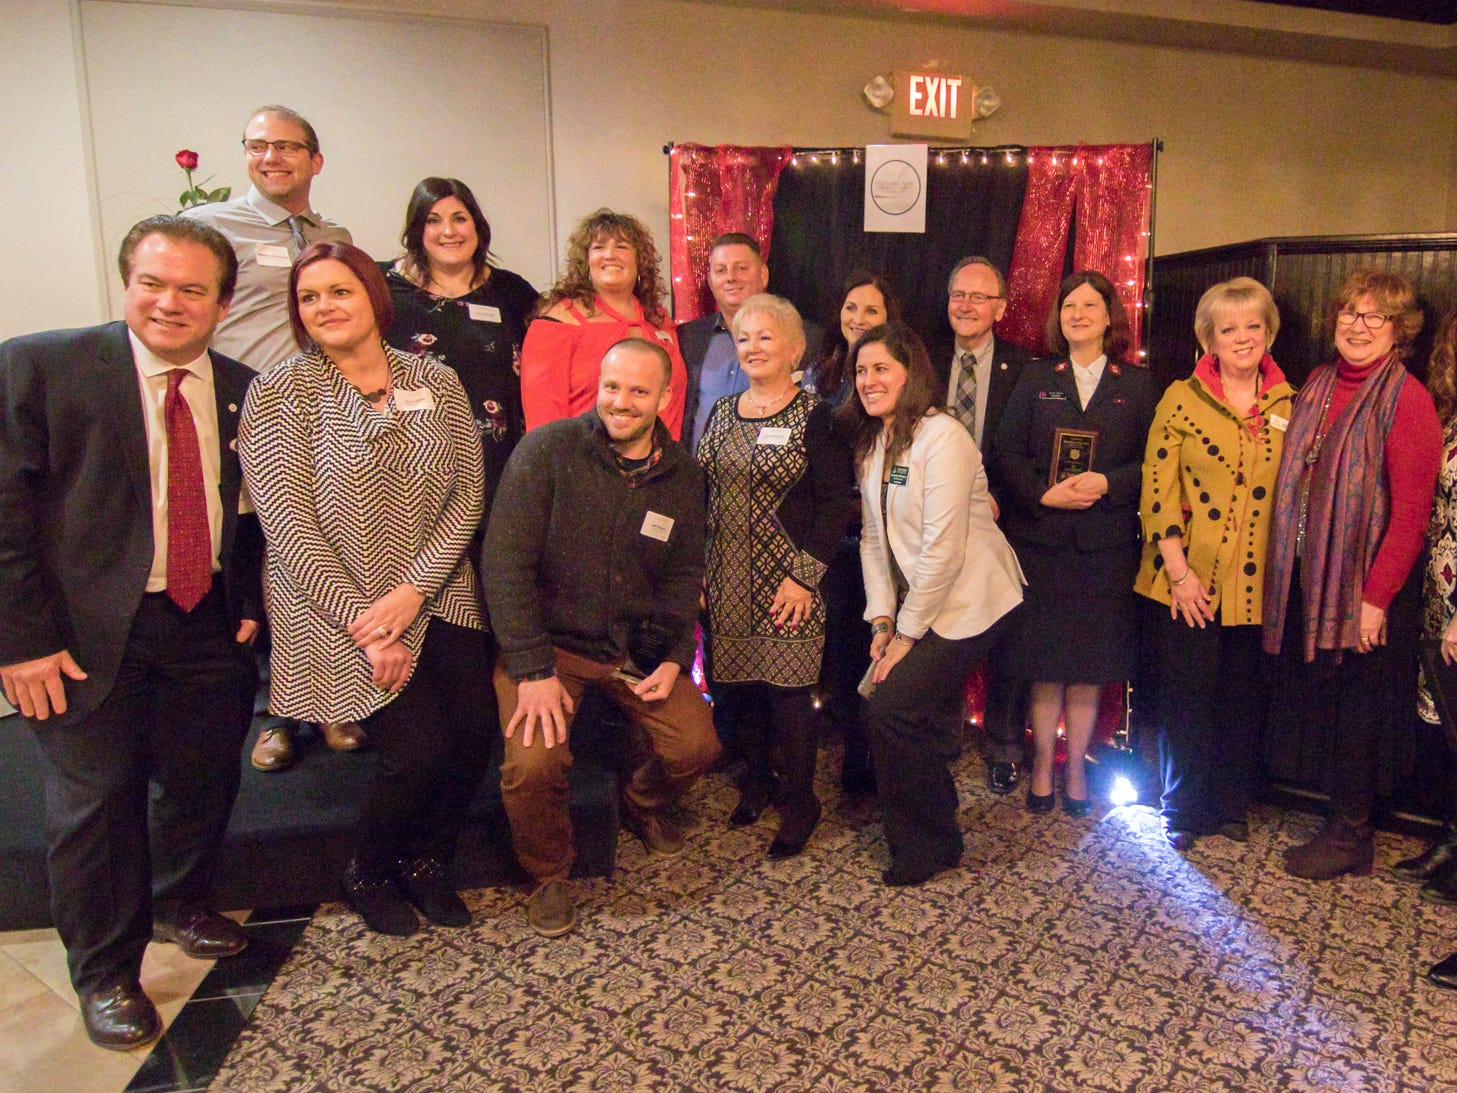 Honorees including Susan Alderson, R.N., eighth from the left, of Fountain of Youth Skin Renewal Centre which was given the Business Excellence award, pose at the end of the Hartland Chamber awards dinner Thursday, Jan. 31, 2019.